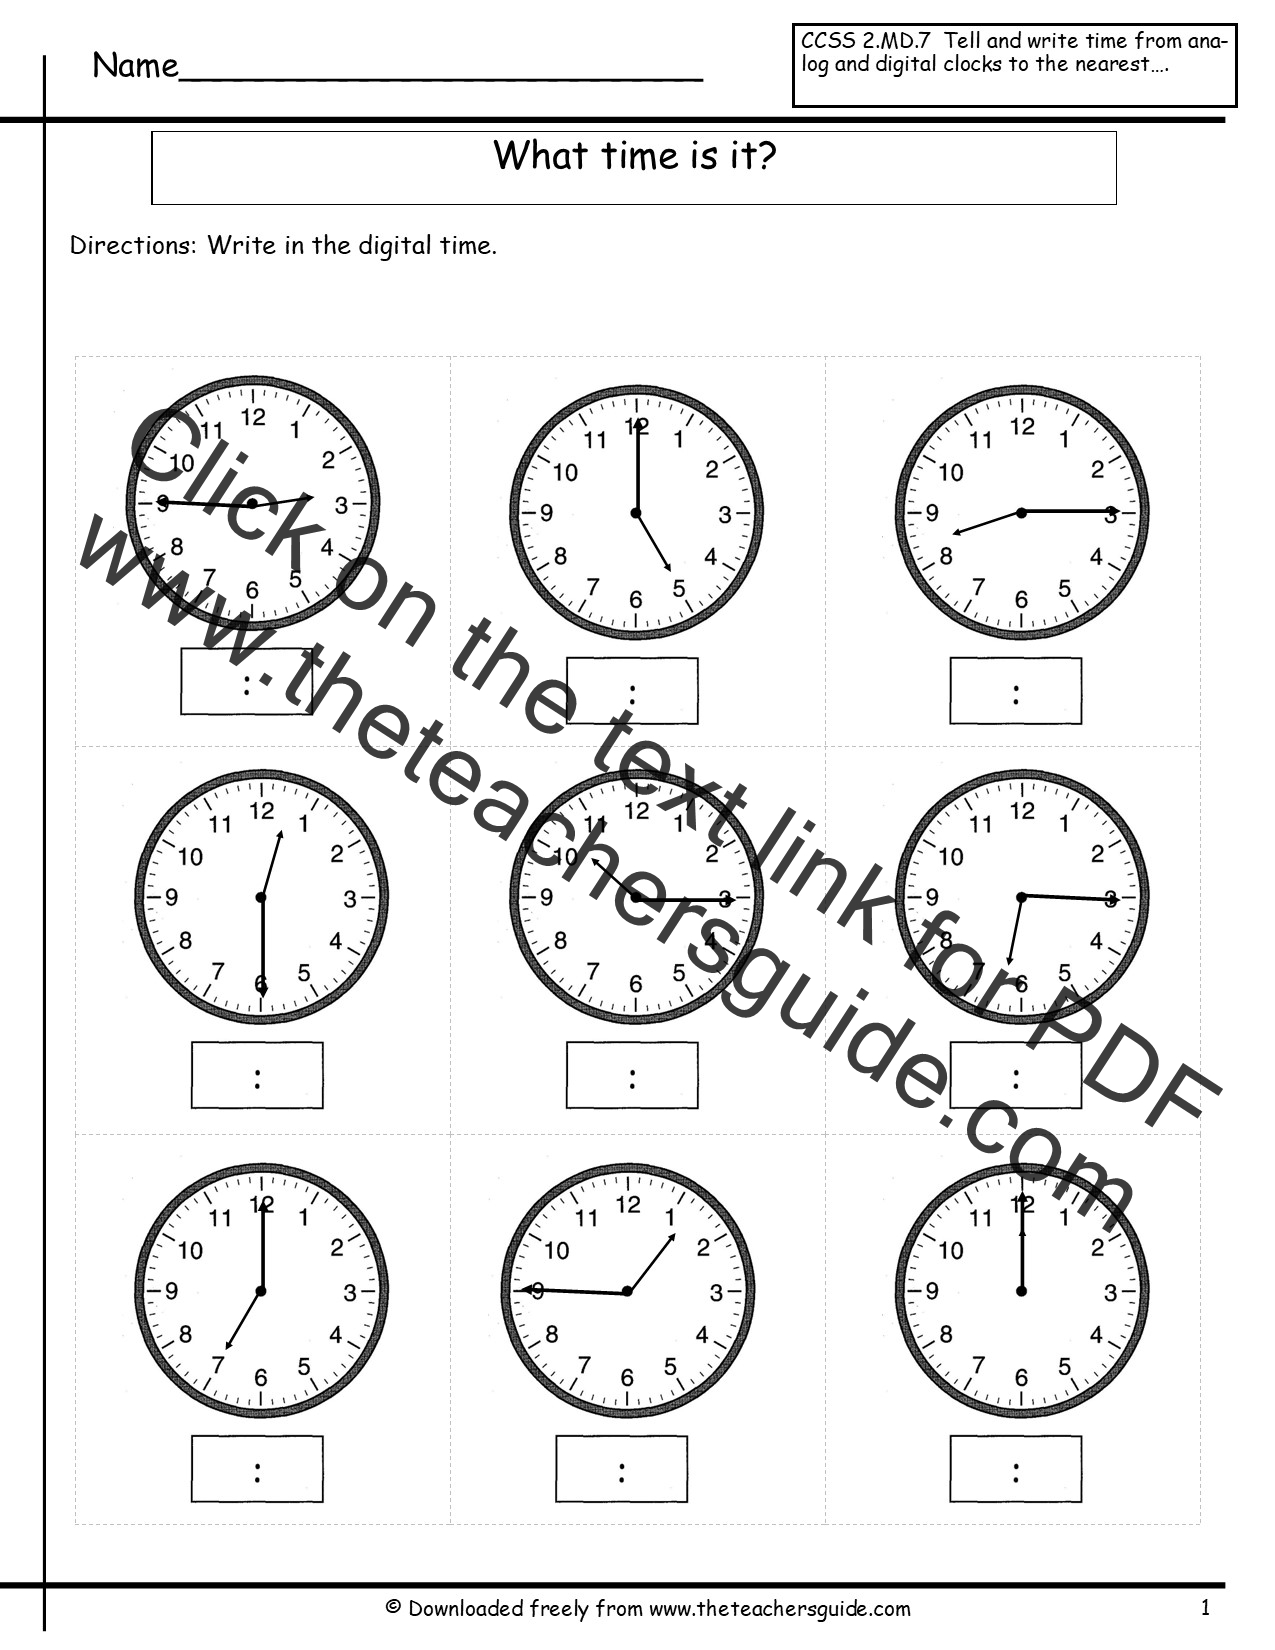 Wood Working Looking For Digital Clock Lesson Plans